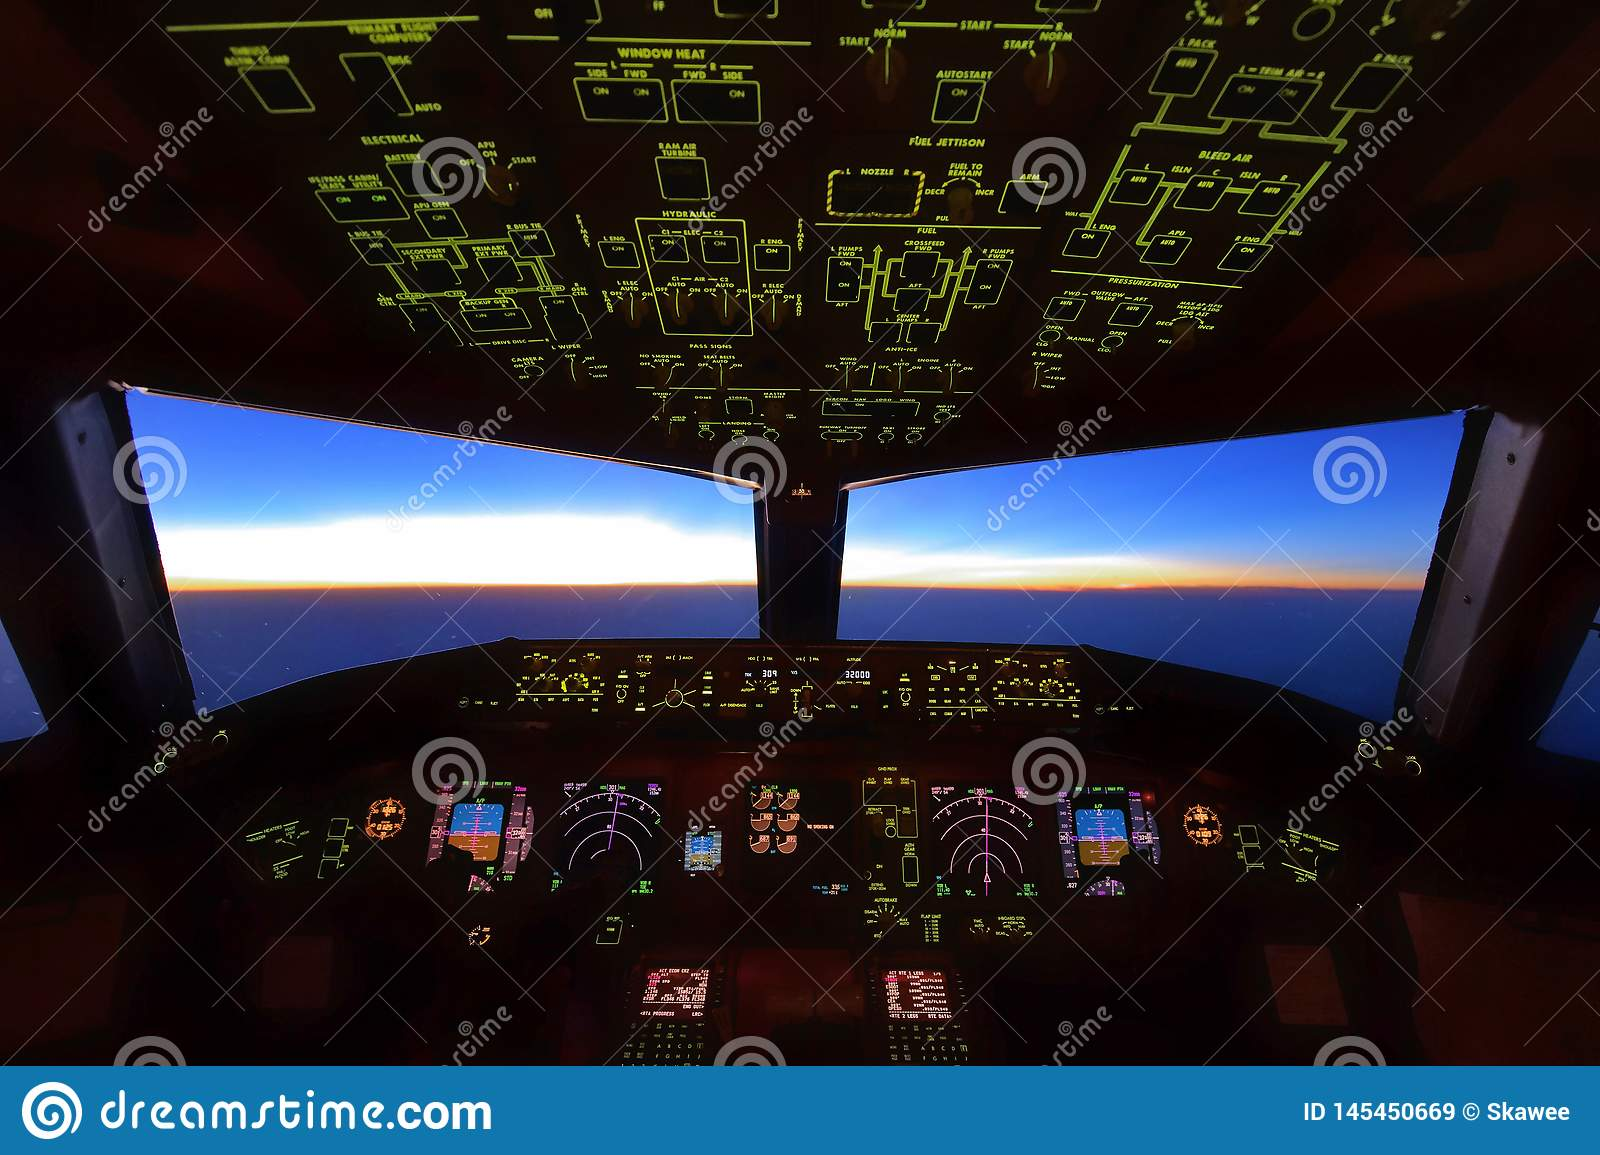 Boeing 777 Cockpit, Flying over over Pacific sea, Pilots were performing their work during sunrise over Japan airspace